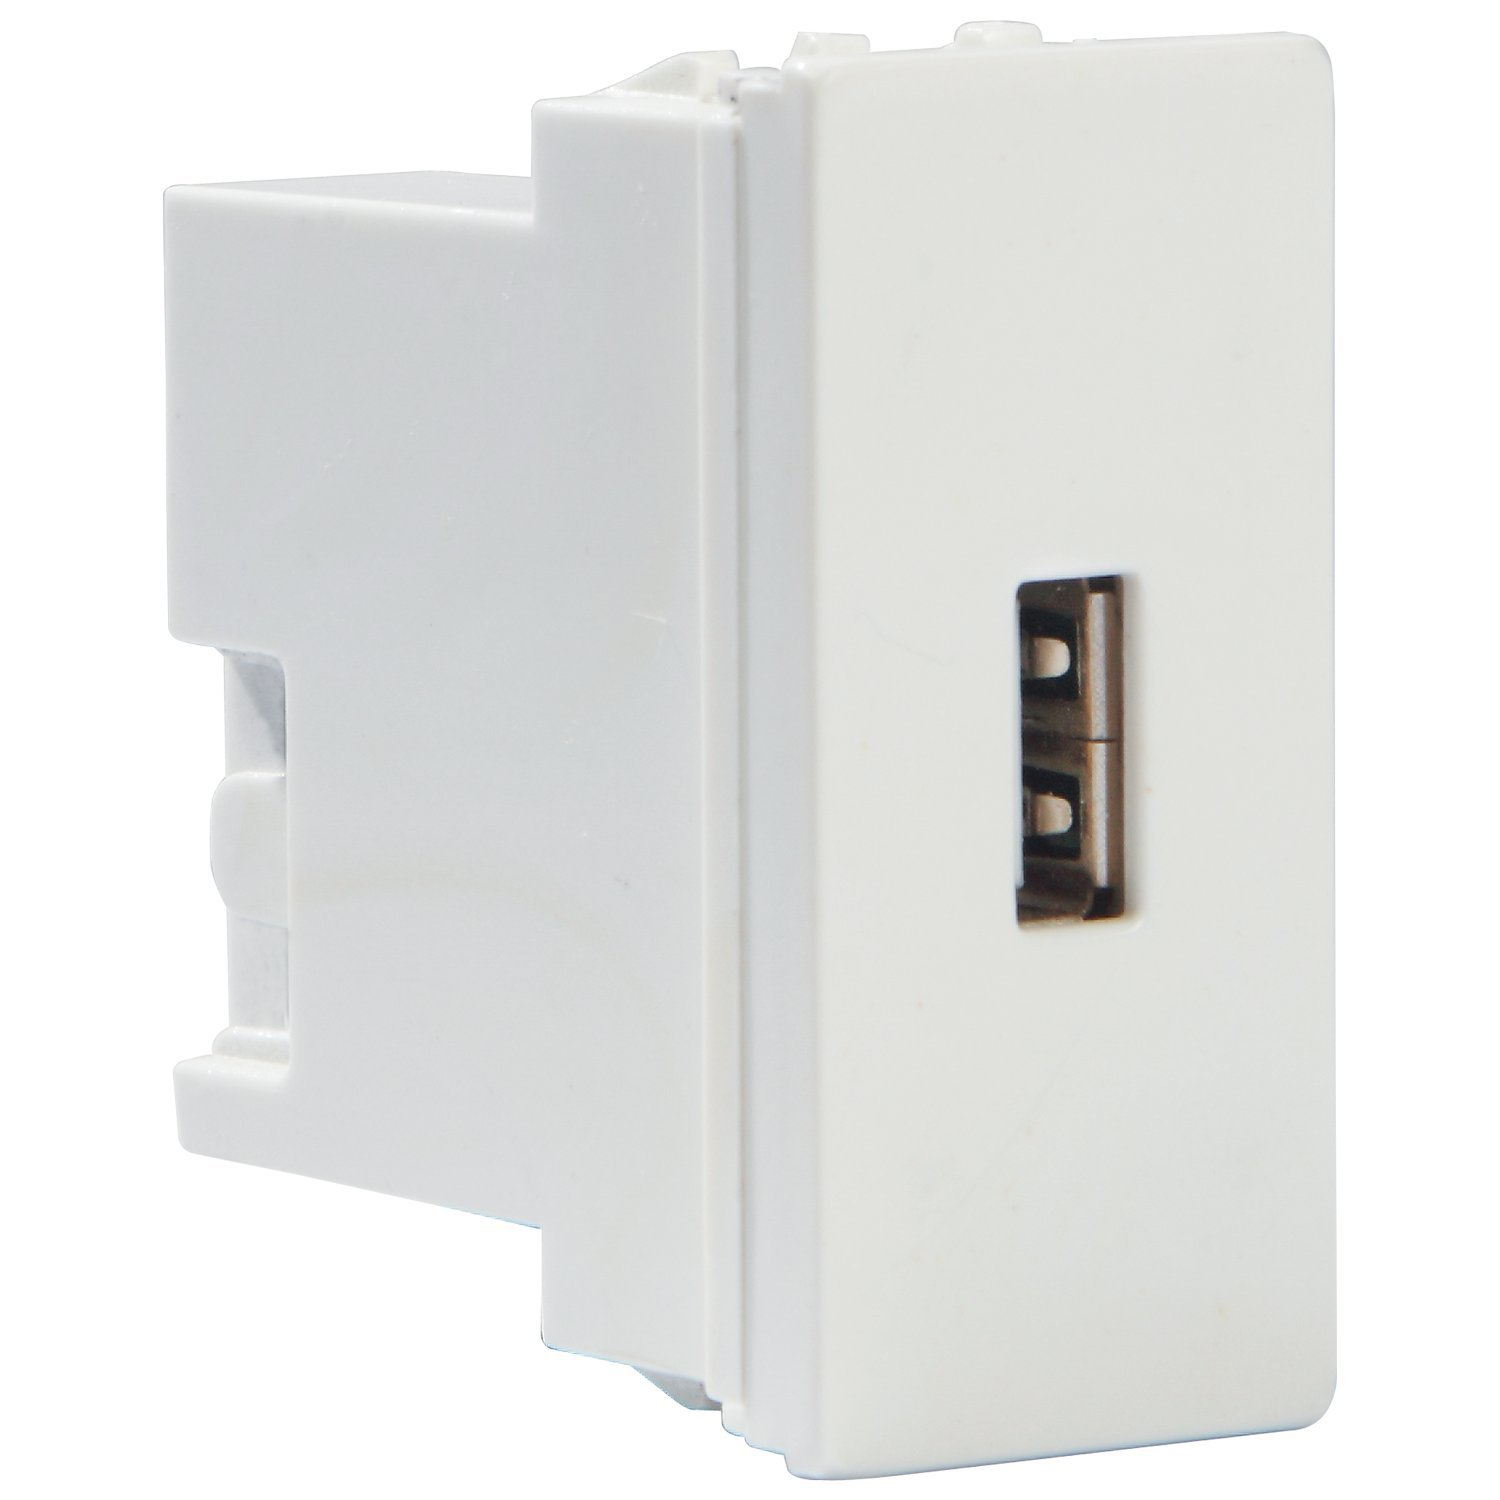 Havells Crabtree Athena USB Charger: Amazon.in: Home Improvement